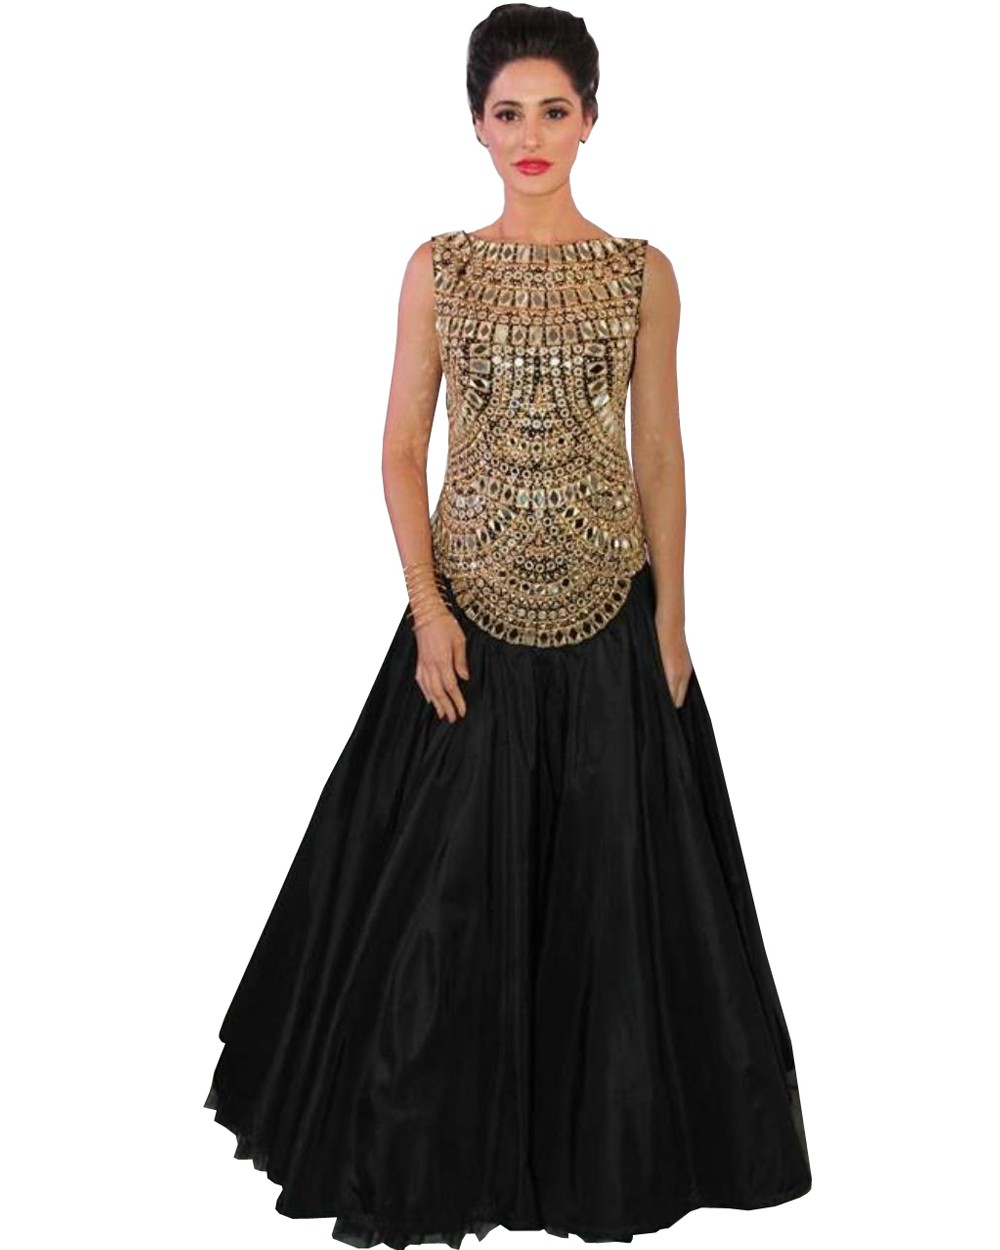 0f935f3b7 Black Long Dress Manufacturer   Manufacturer from